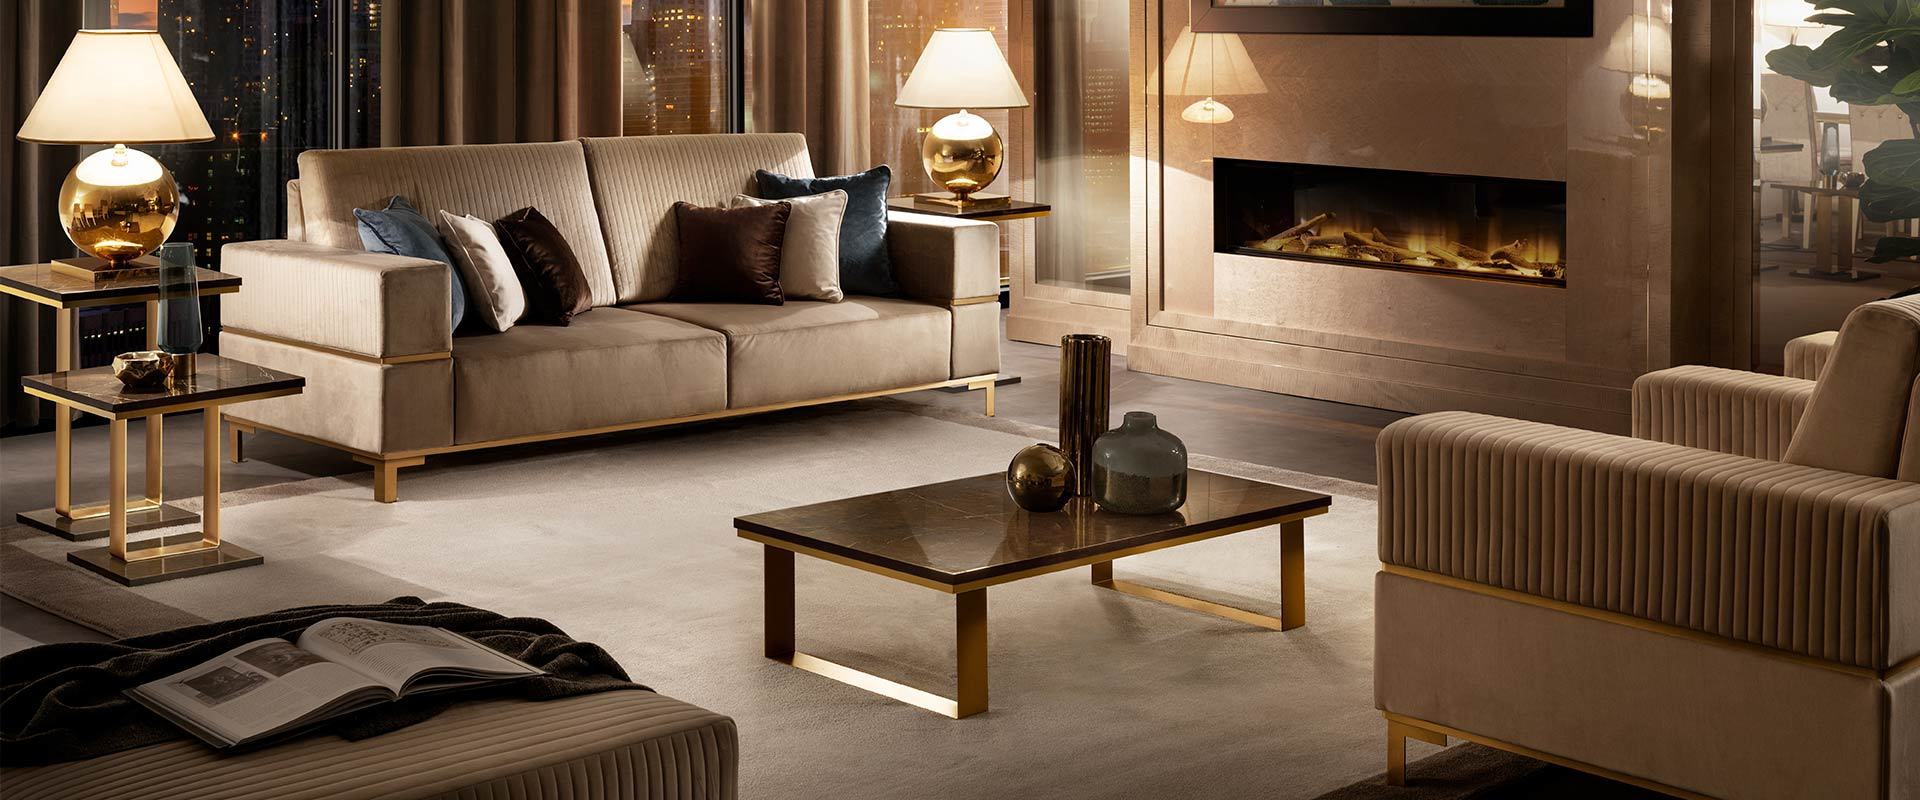 Adora interiors essenza living room set with lamp tables and coffee tables